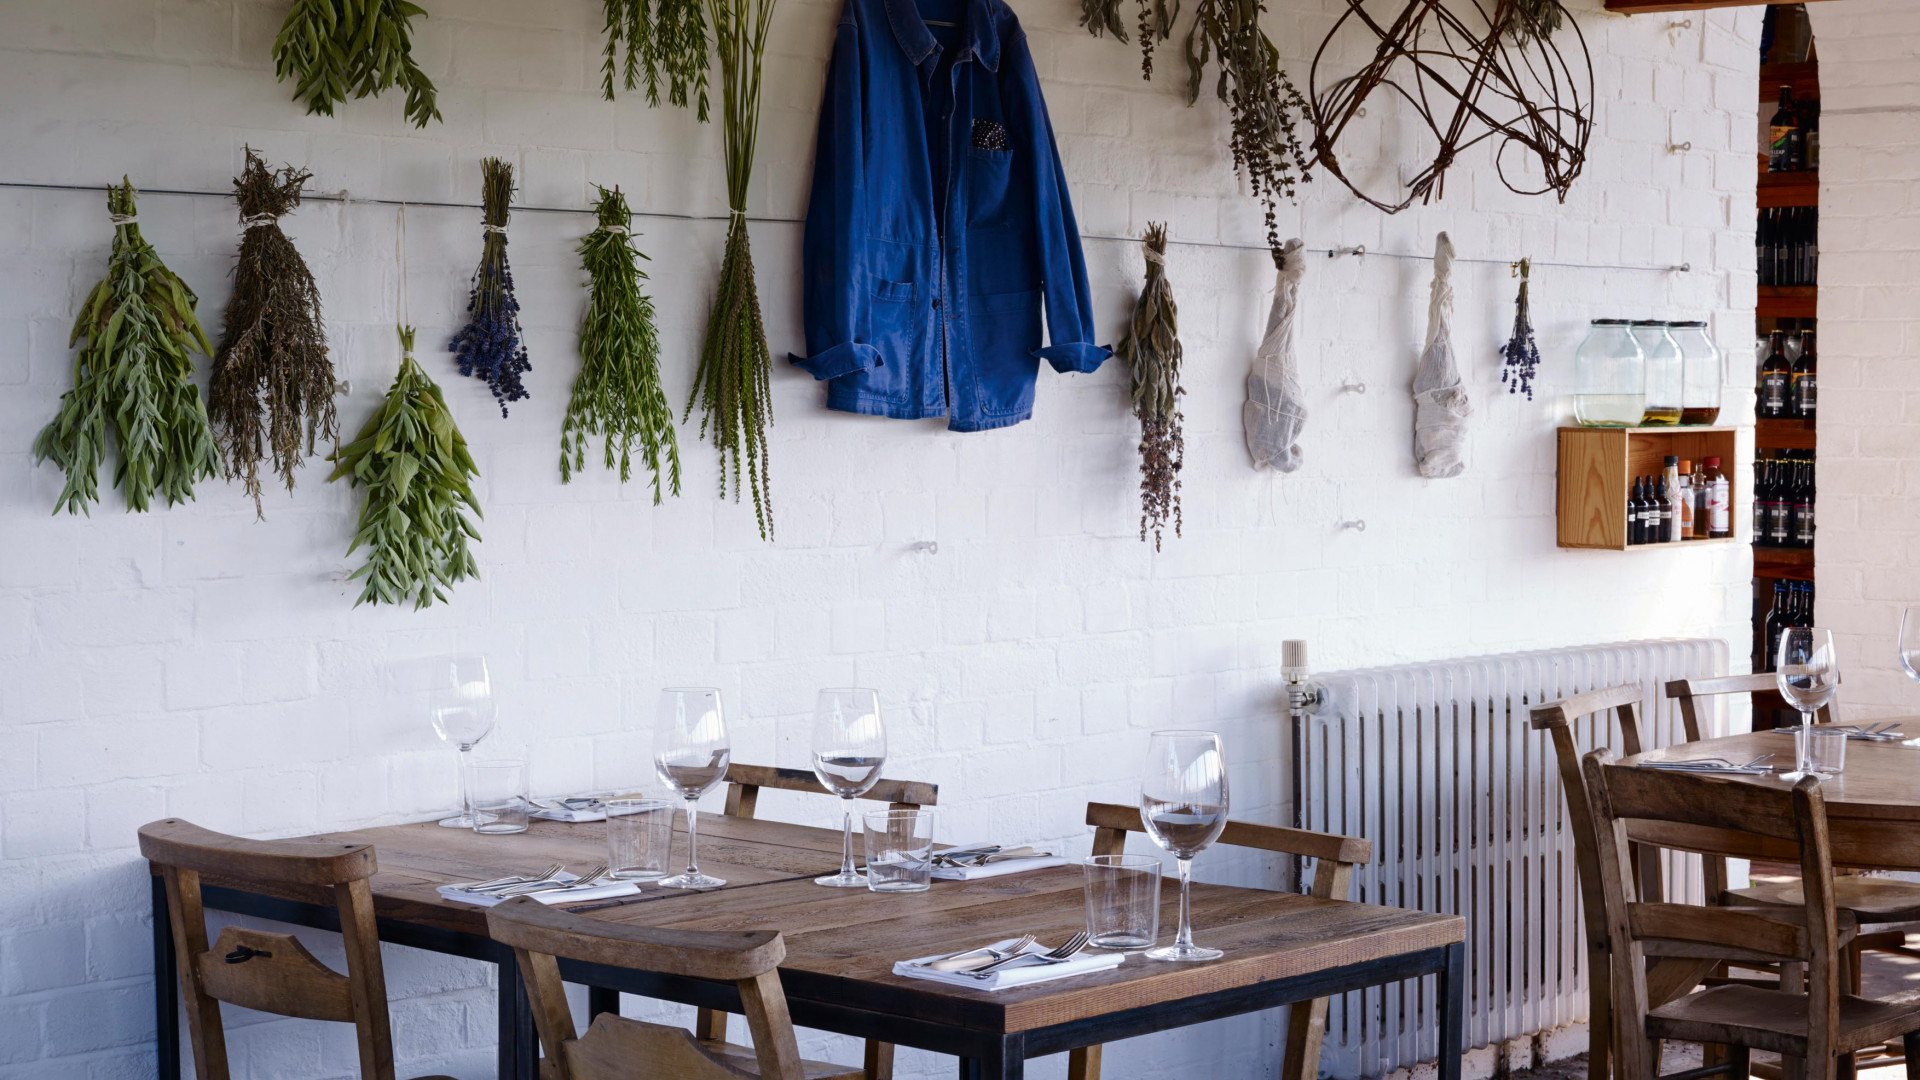 Inside the Ethicurean restaurant